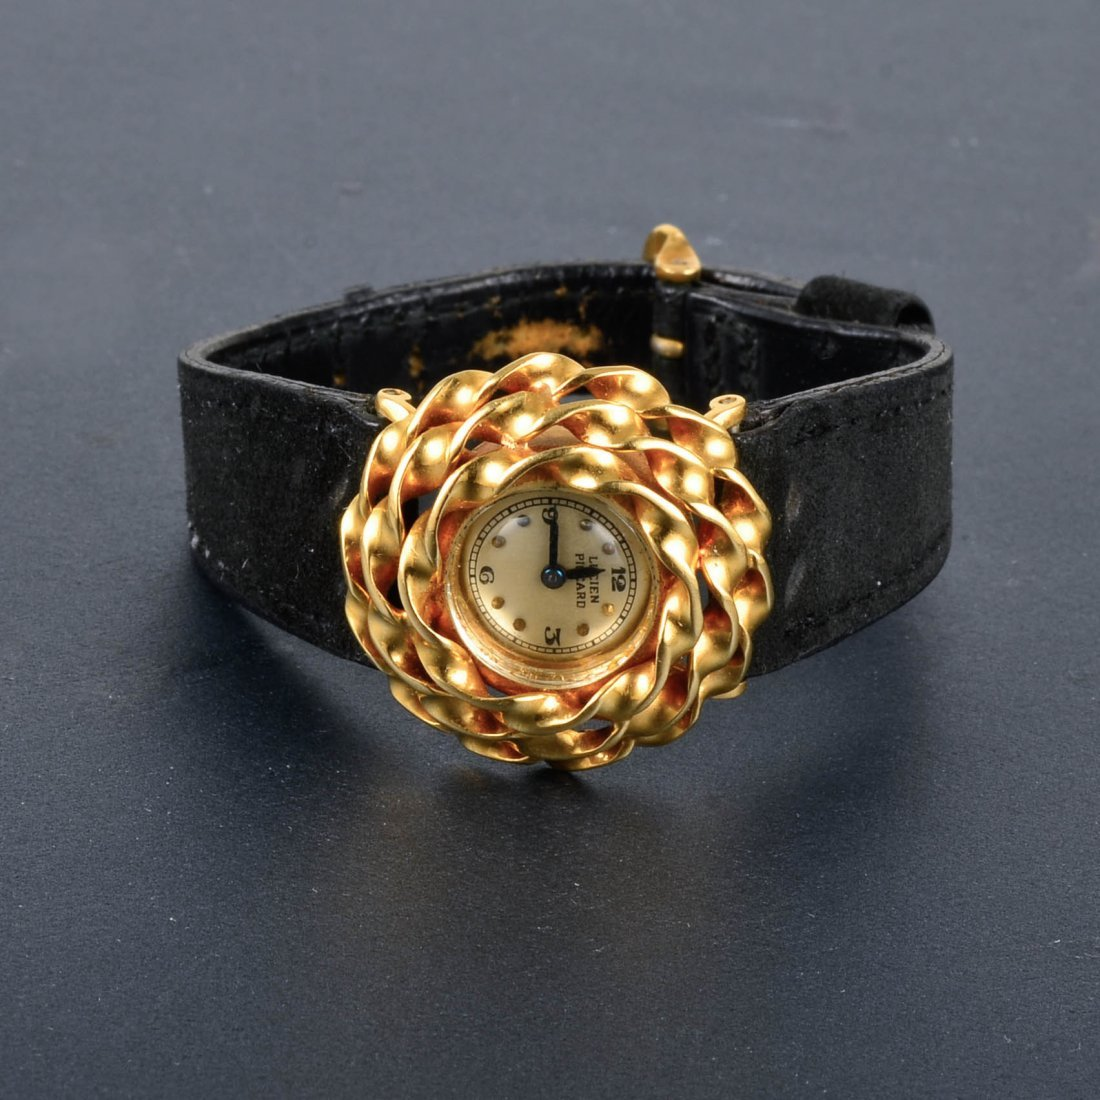 Lucien Piccard 14K YG Woman's Watch